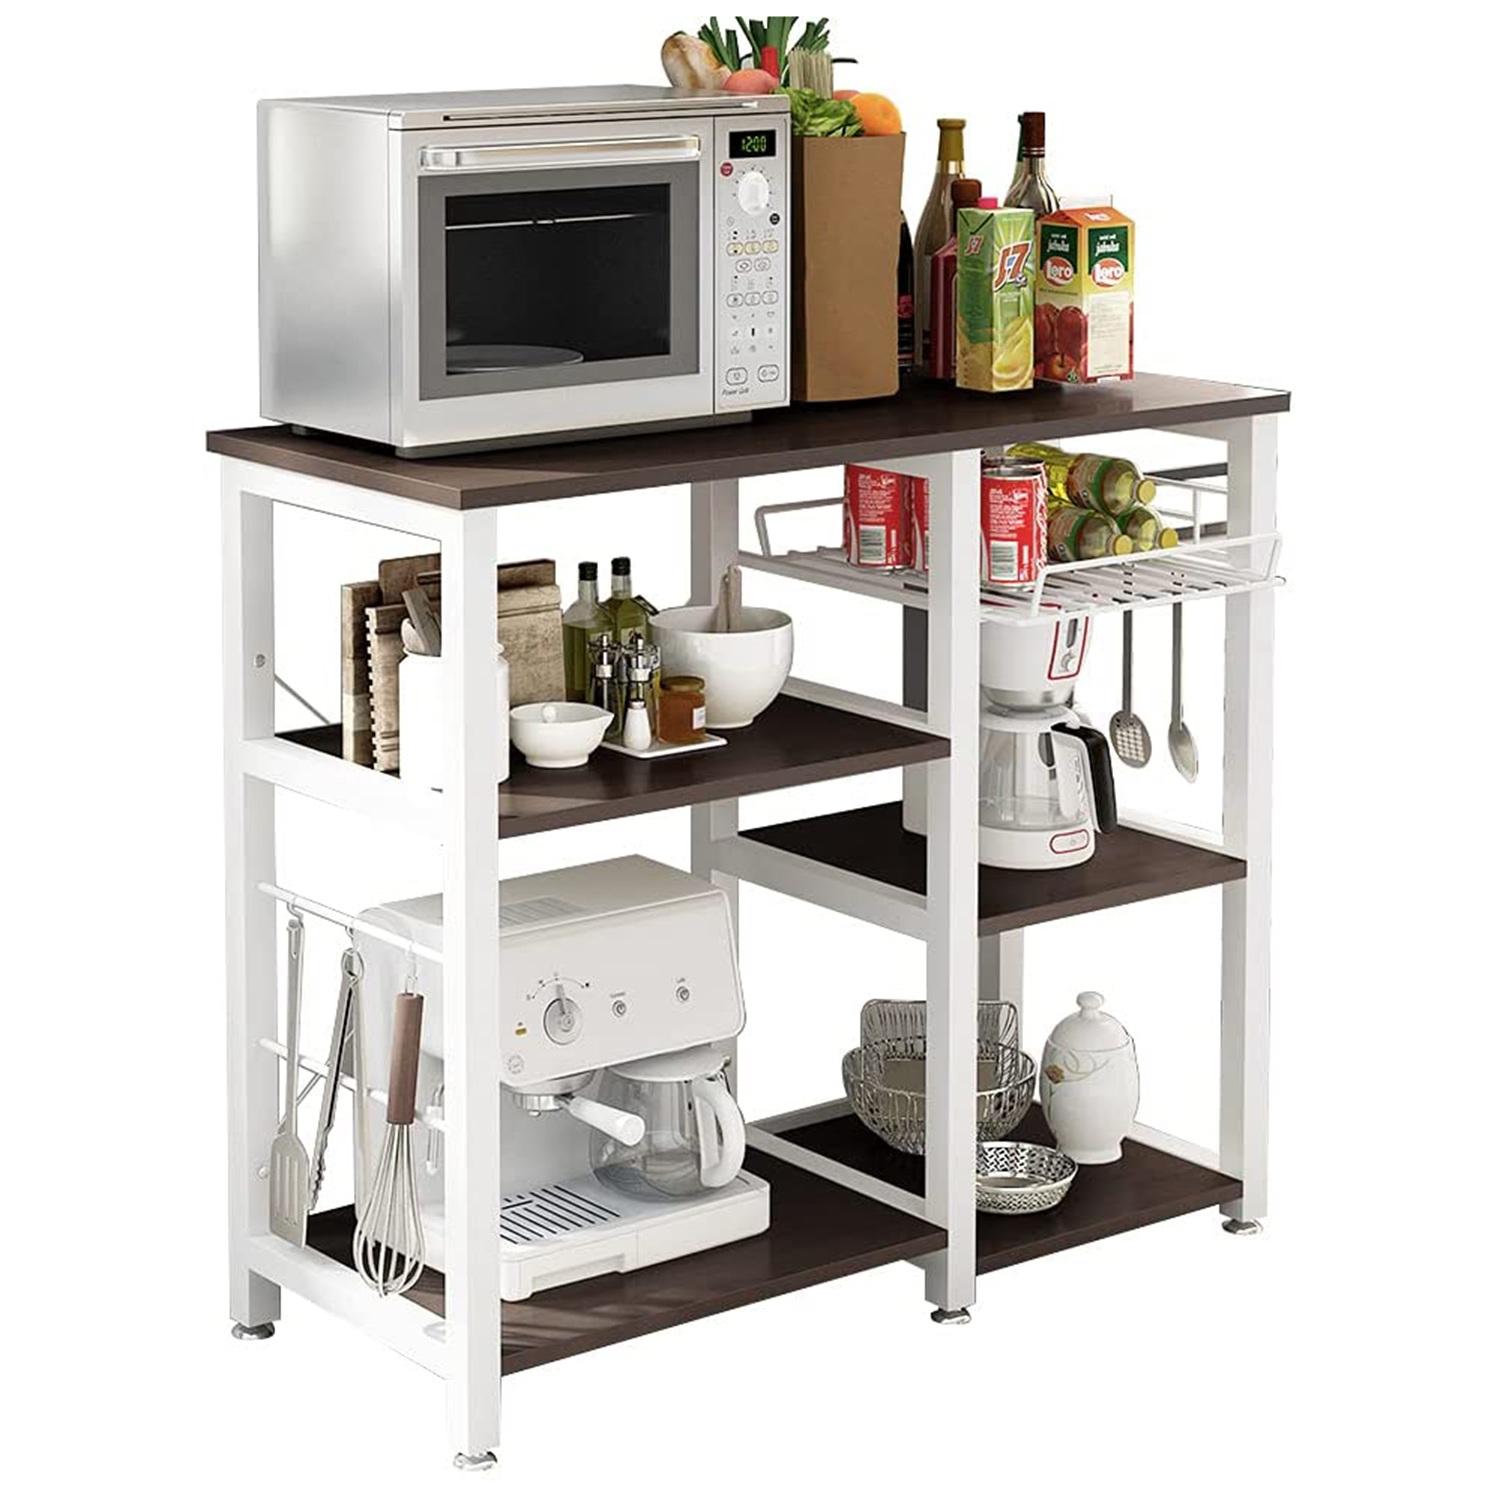 Soges 3-Tier Kitchen Baker's Rack Utility Microwave Oven Stand Storage Cart